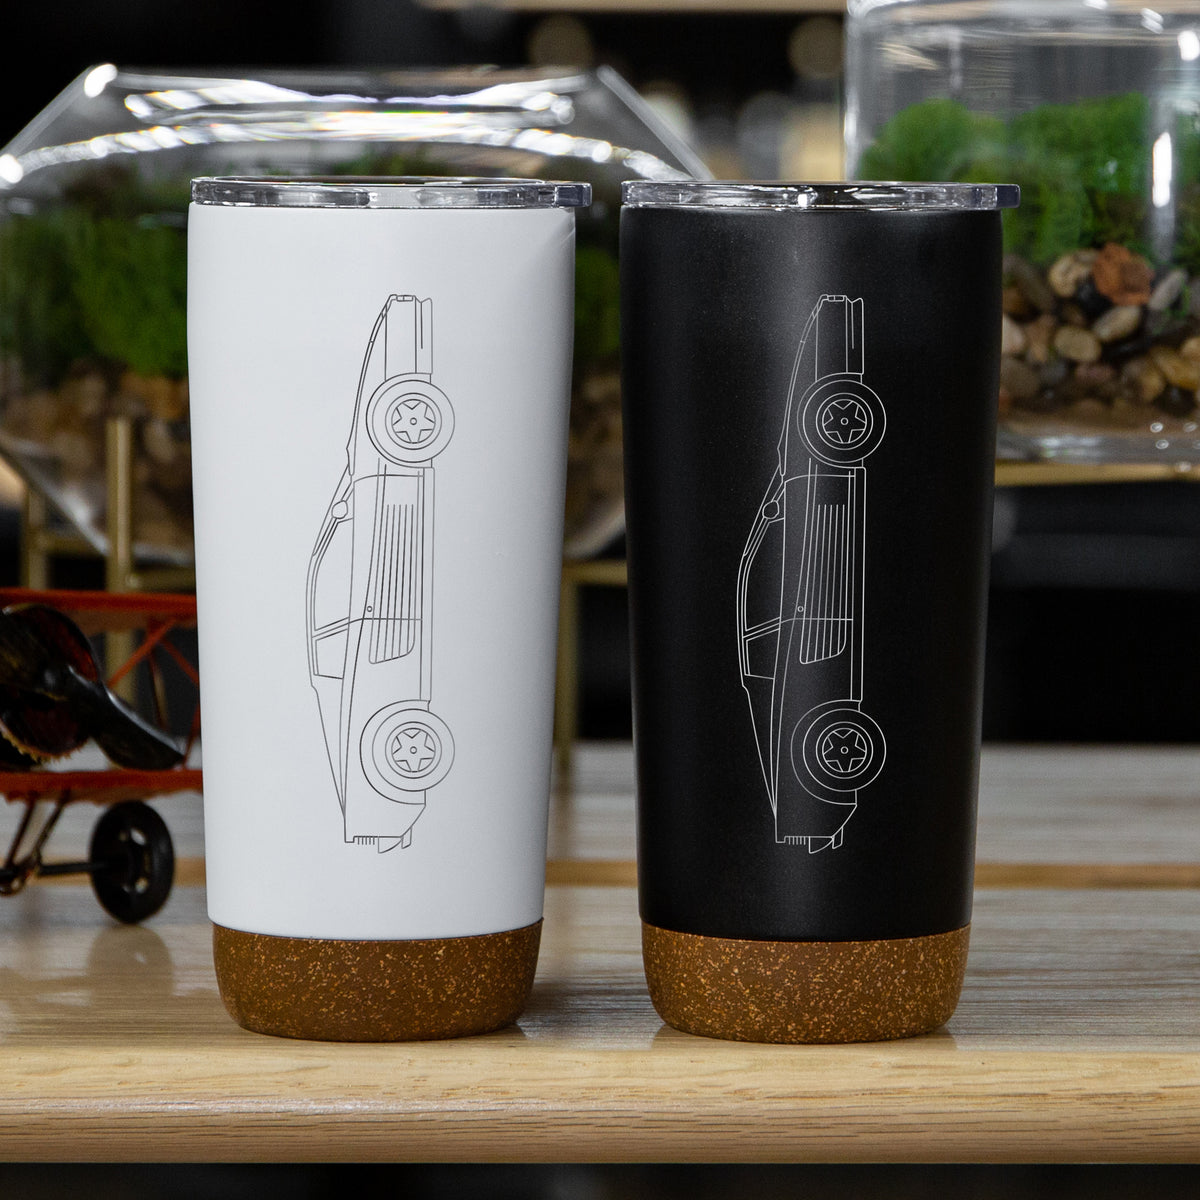 Ferrari Testarossa Insulated Stainless Steel Coffee Tumbler - 20 oz